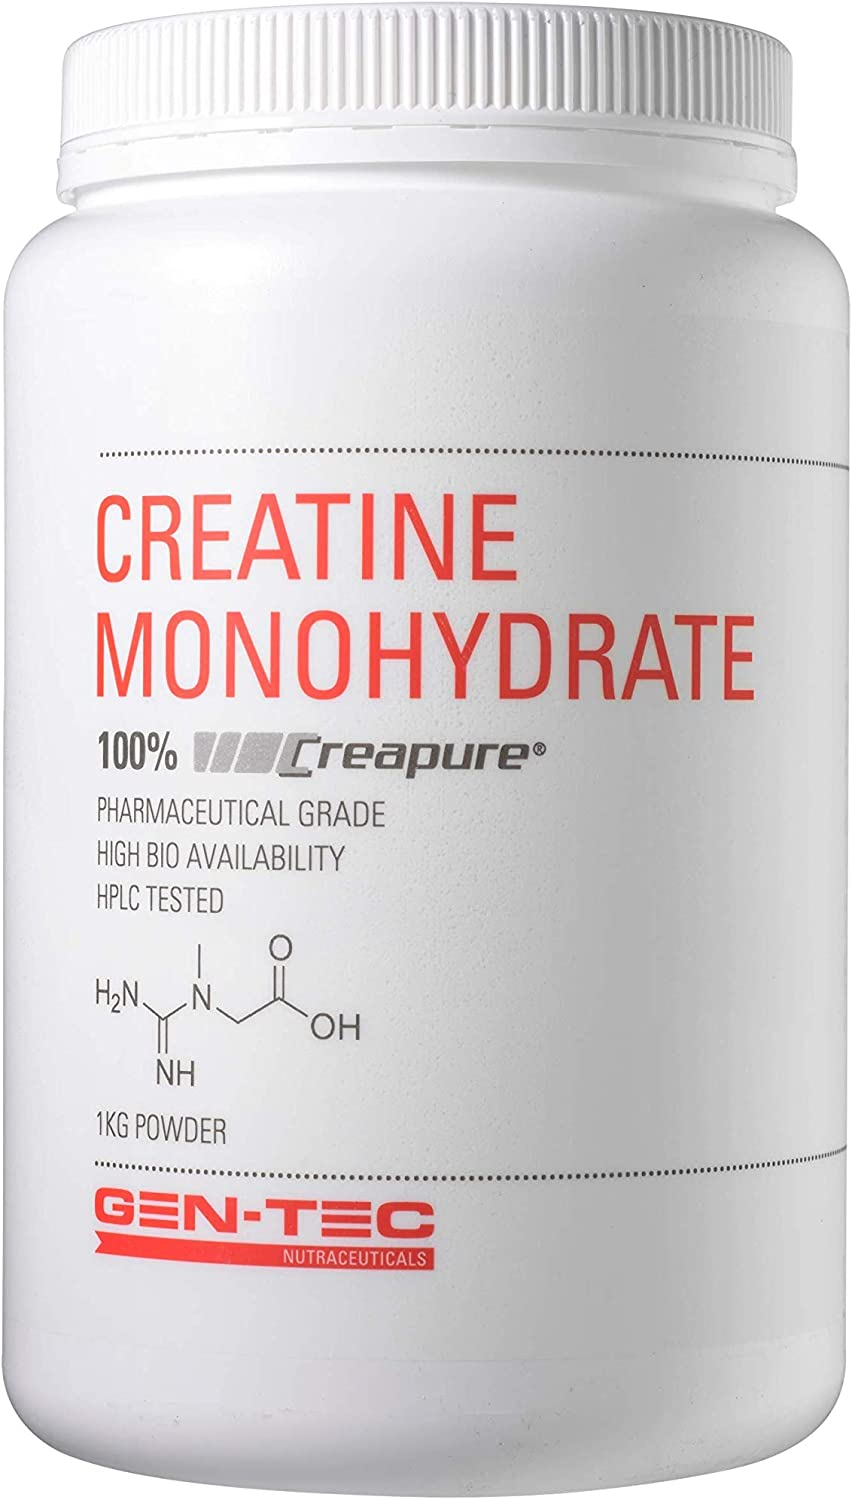 Gen-Tec Nutrition Creatine Monohydrate Powder, 1 Kilograms